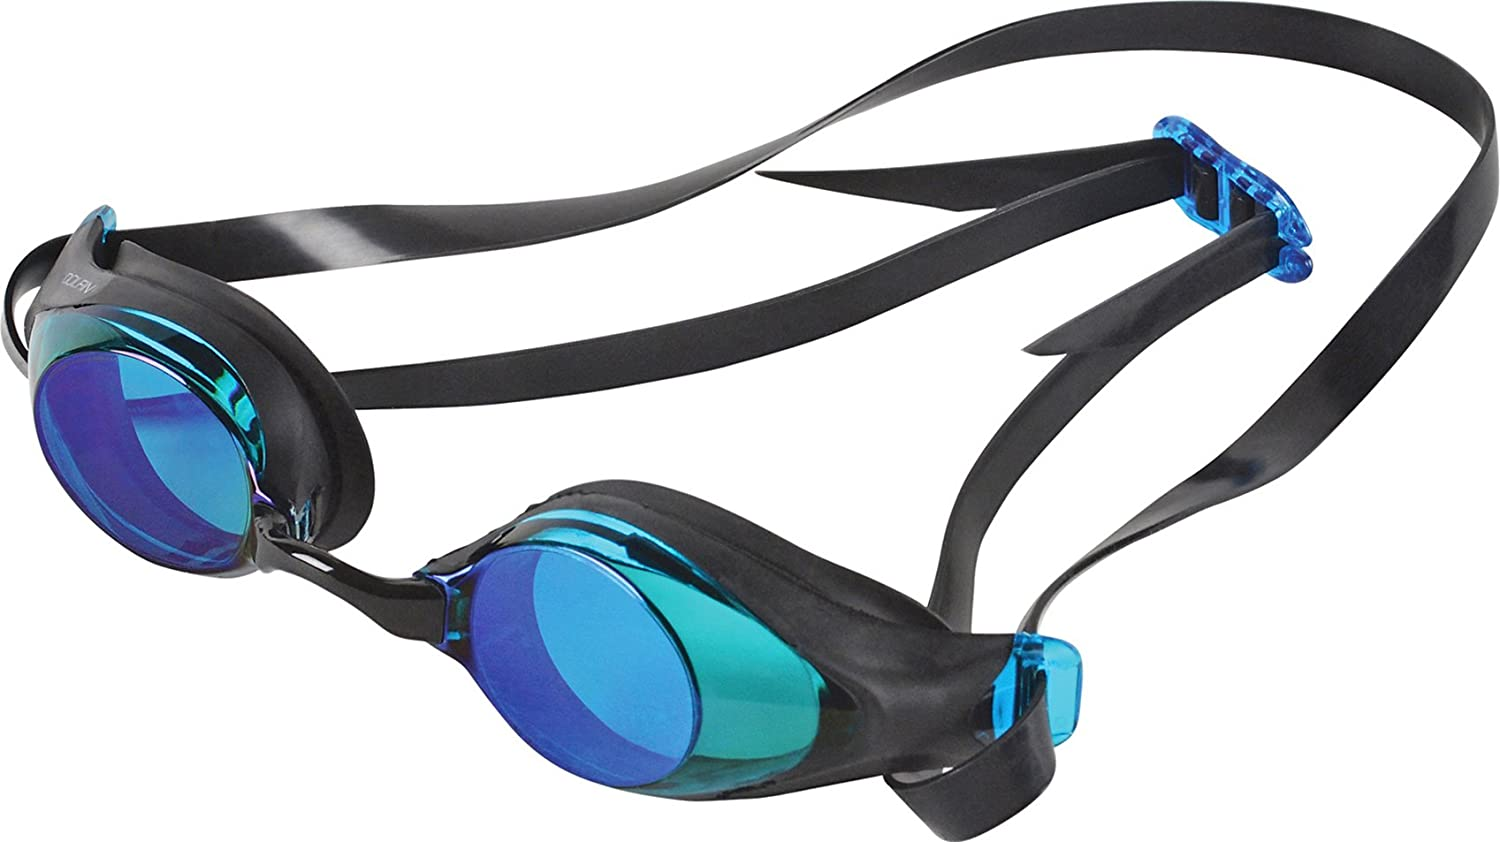 Dolfin Ascender Mirrored Racing Goggles